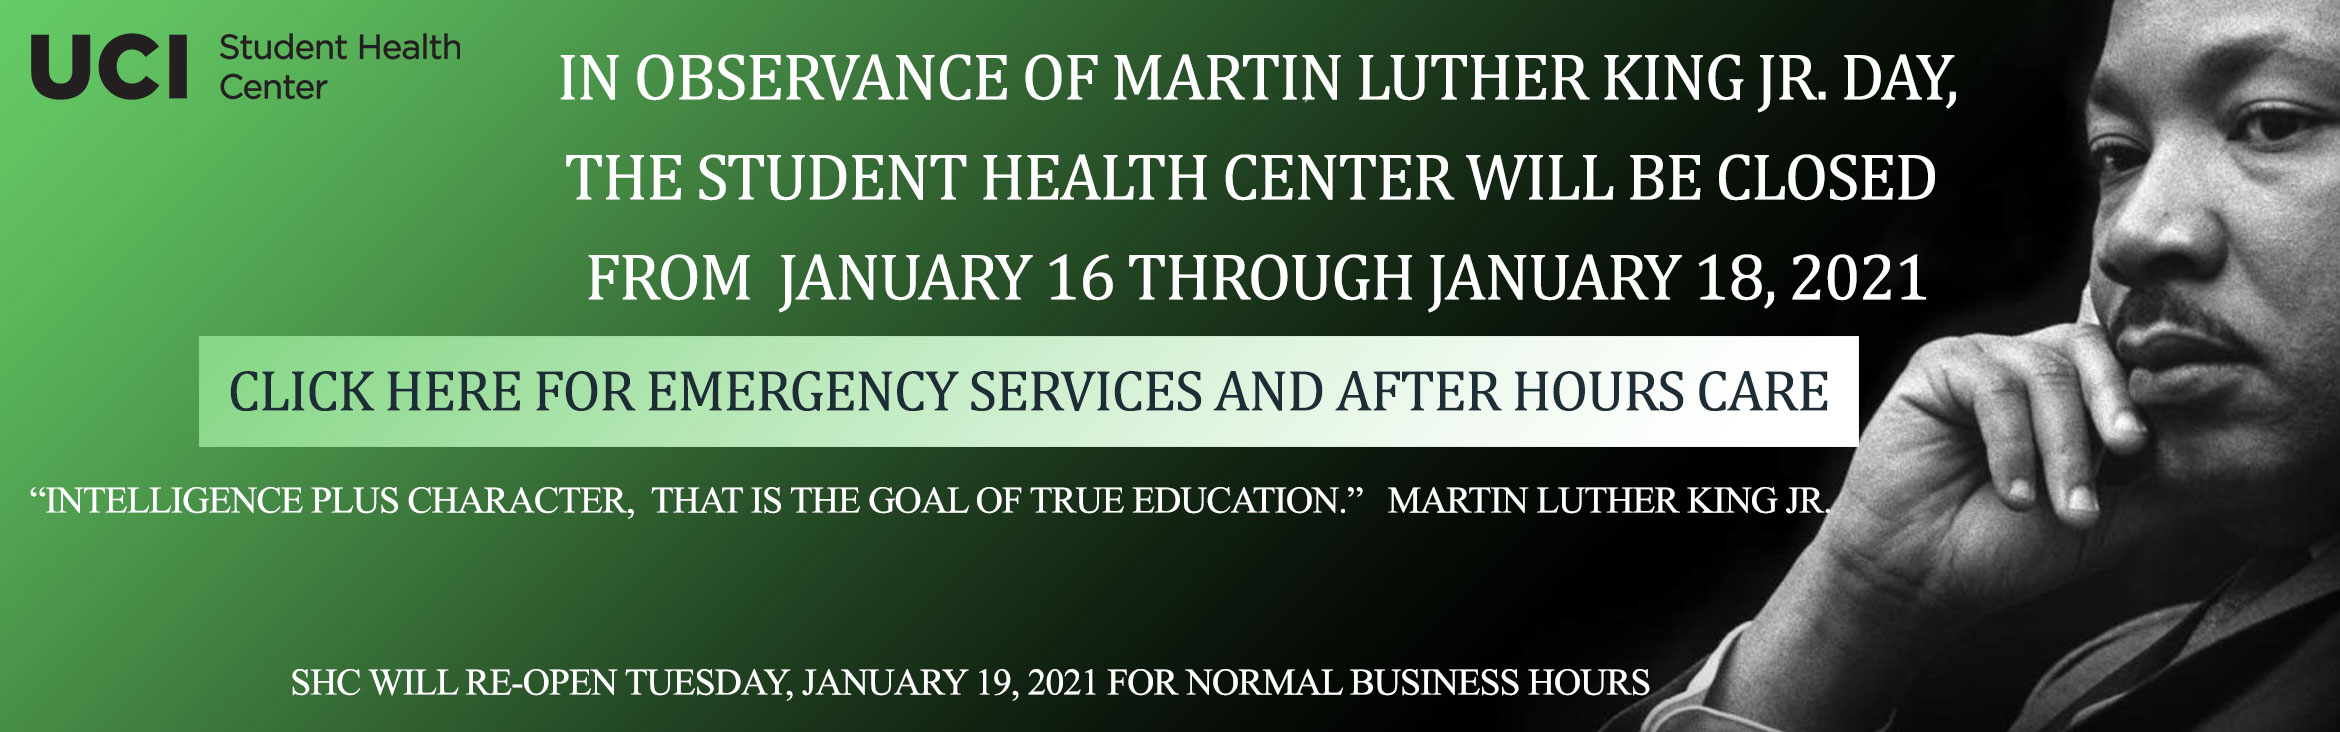 In Observance of Martin Luther King Jr. Day, The Student Health Center will be closed from January 16 through January 18, 2021.